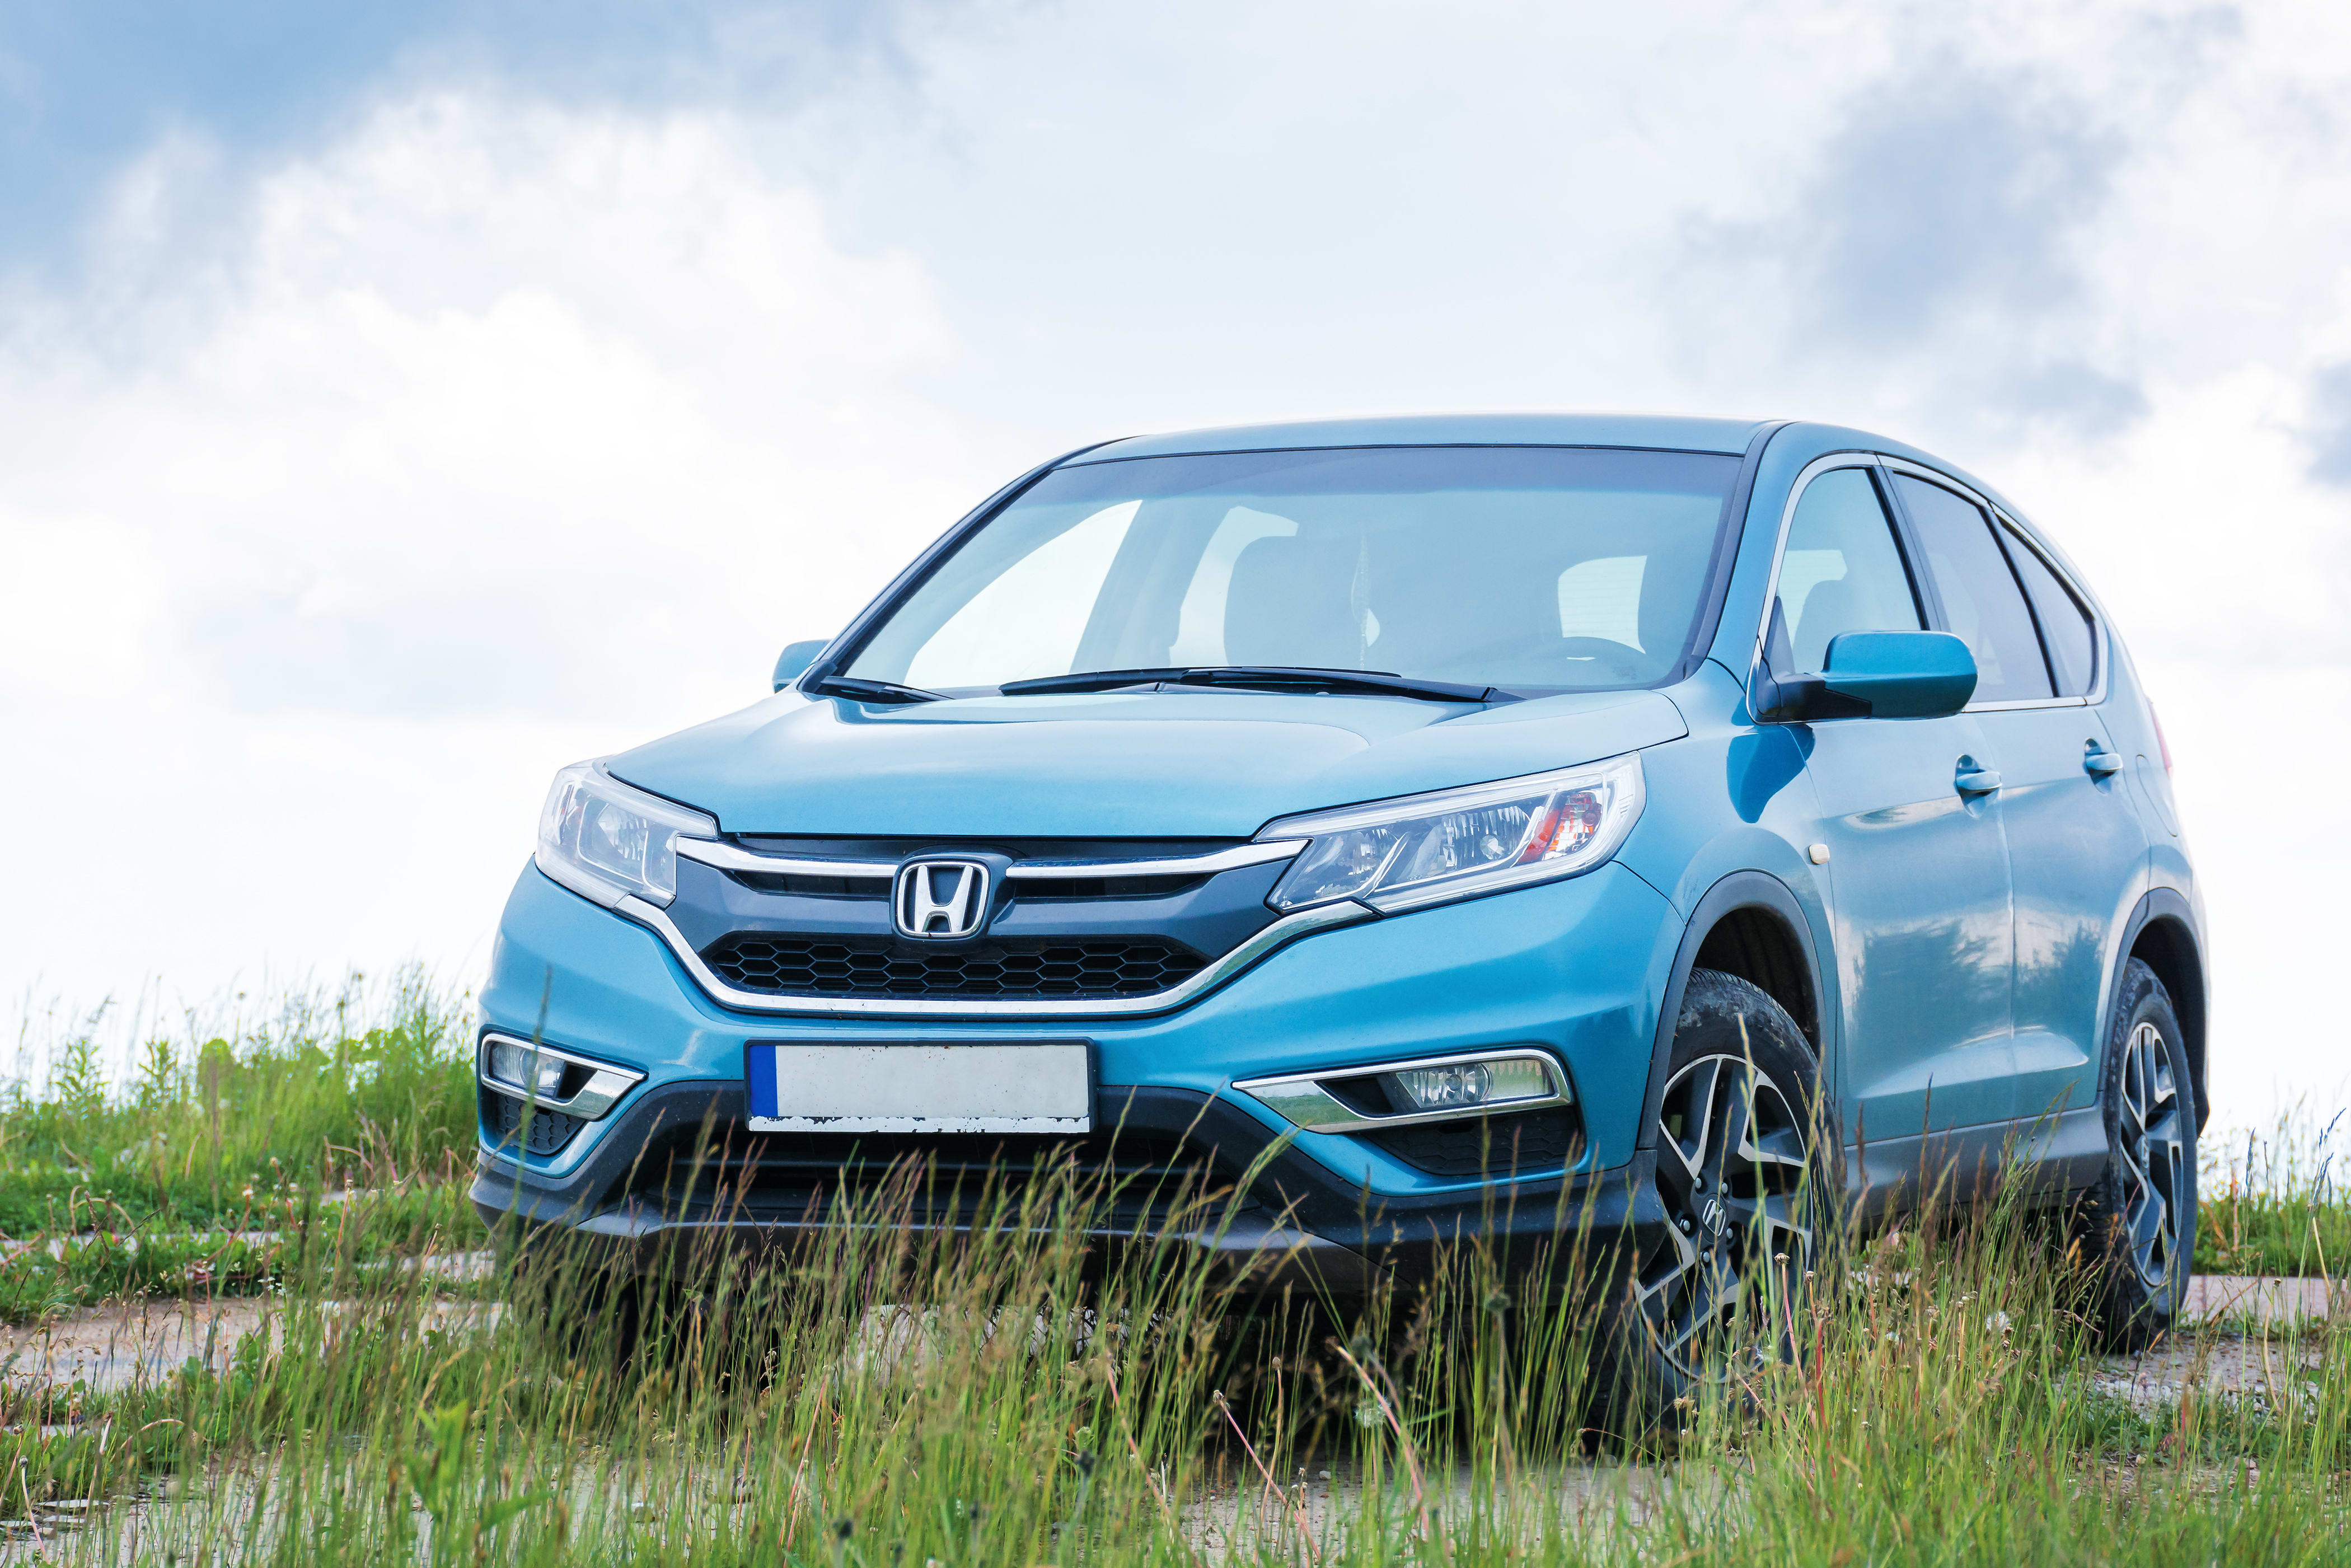 Honda Issues Recall Due To Metal Fragments Affecting Air Bags